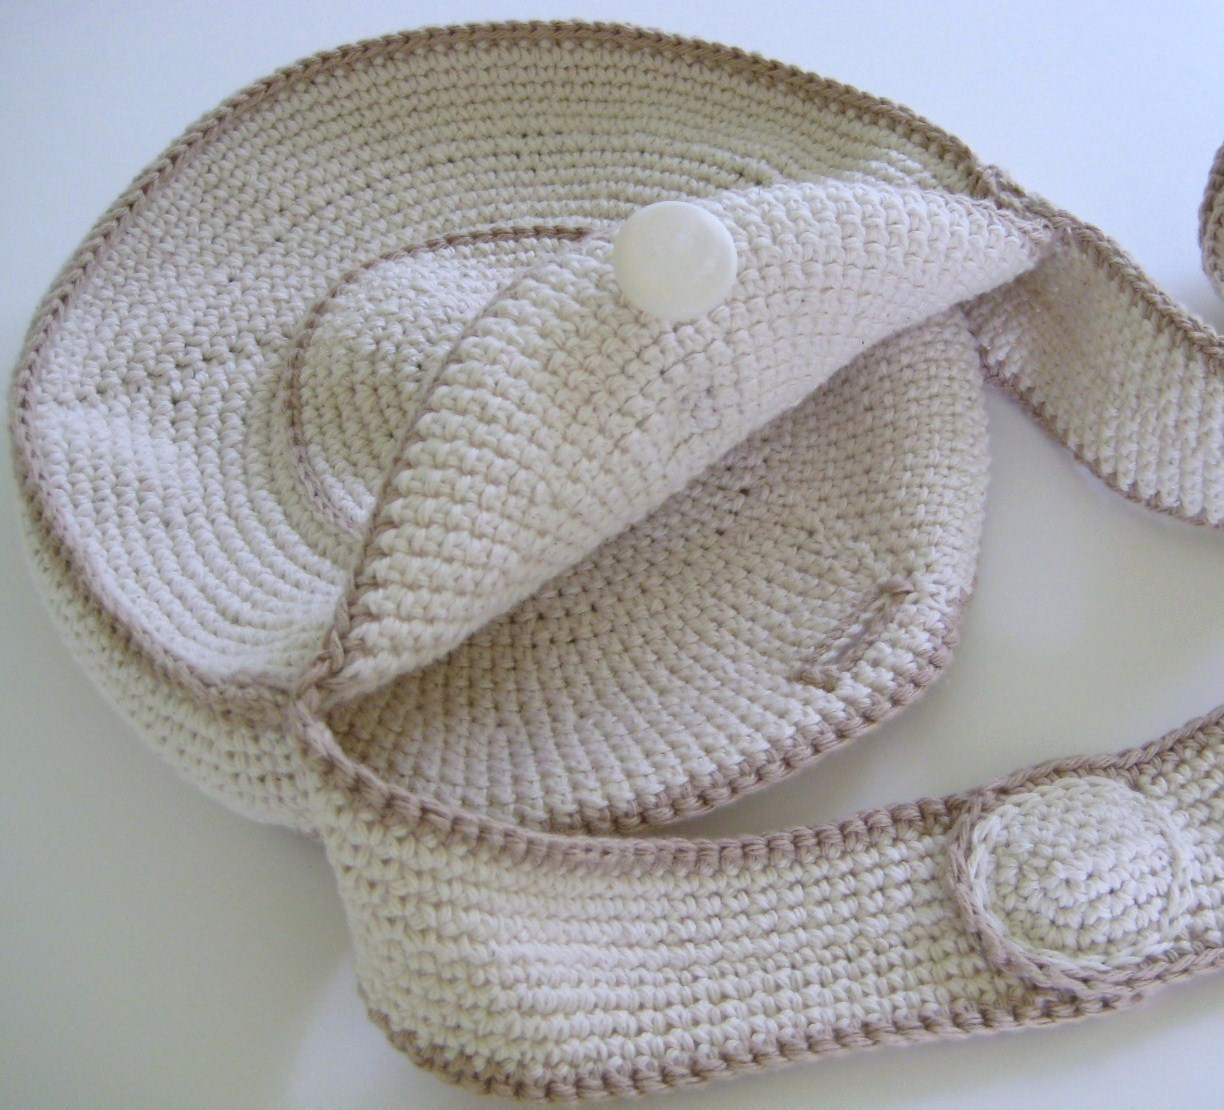 ... : Using My Stash of Finished Objects: My Crocheted Vintage Circle Bag